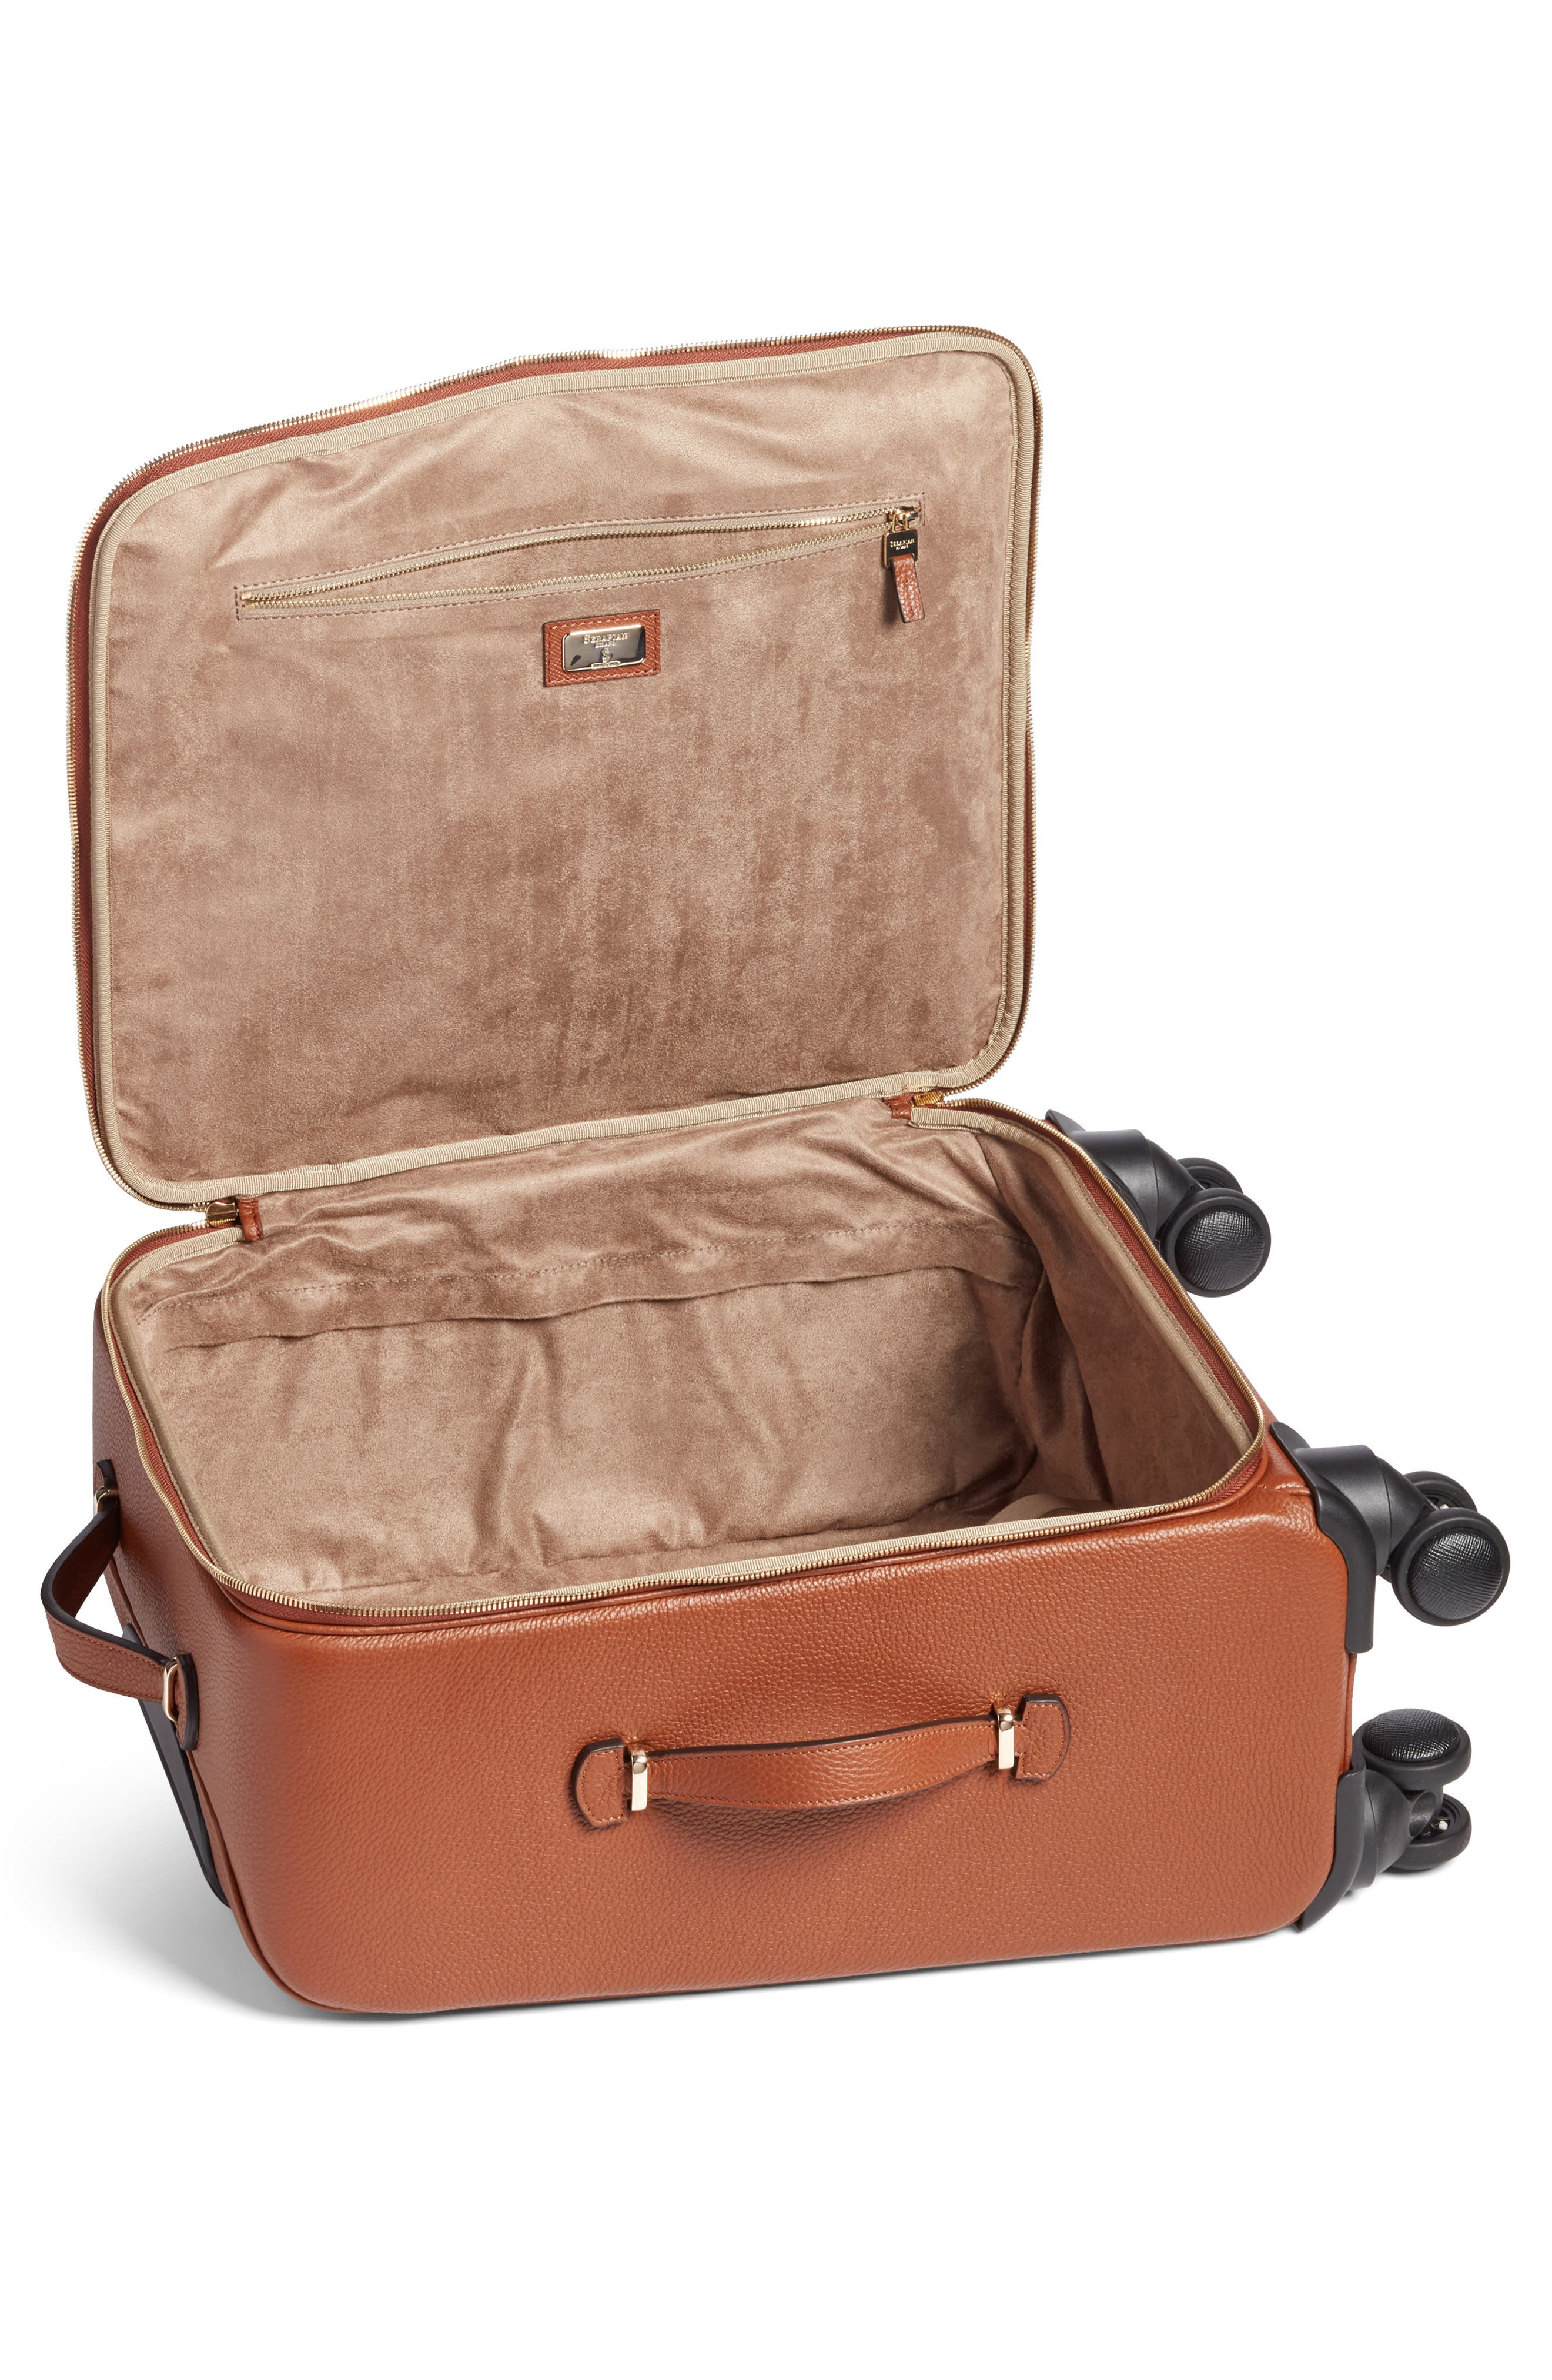 Trolley Spinner Wheeled Carry-On Suitcase,                             Alternate thumbnail 3, color,                             Sienna